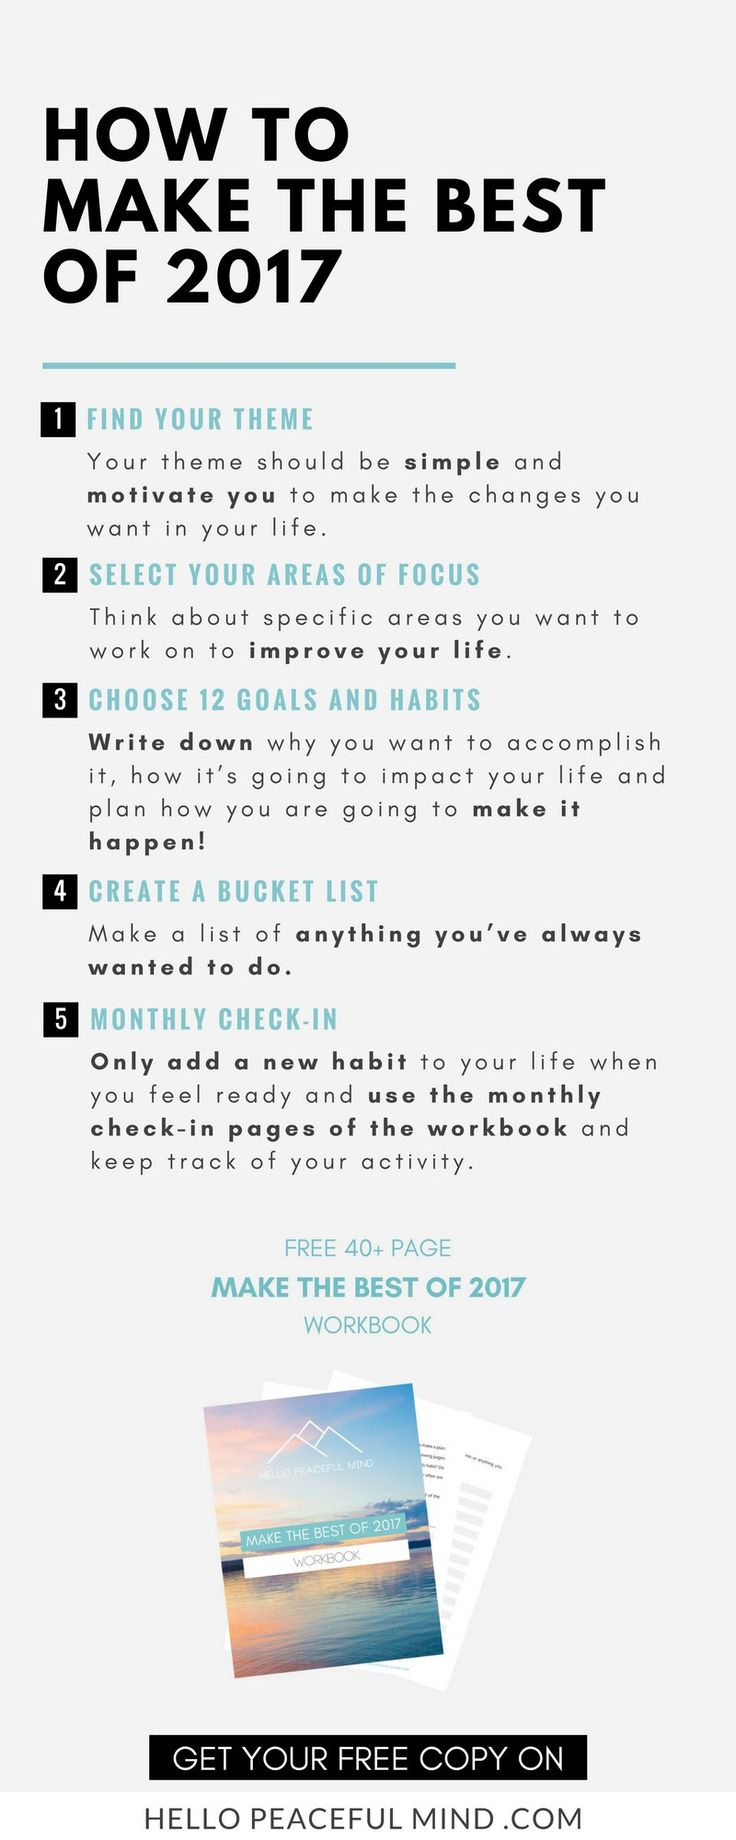 Focus on these 5 steps to make the best of 2017!